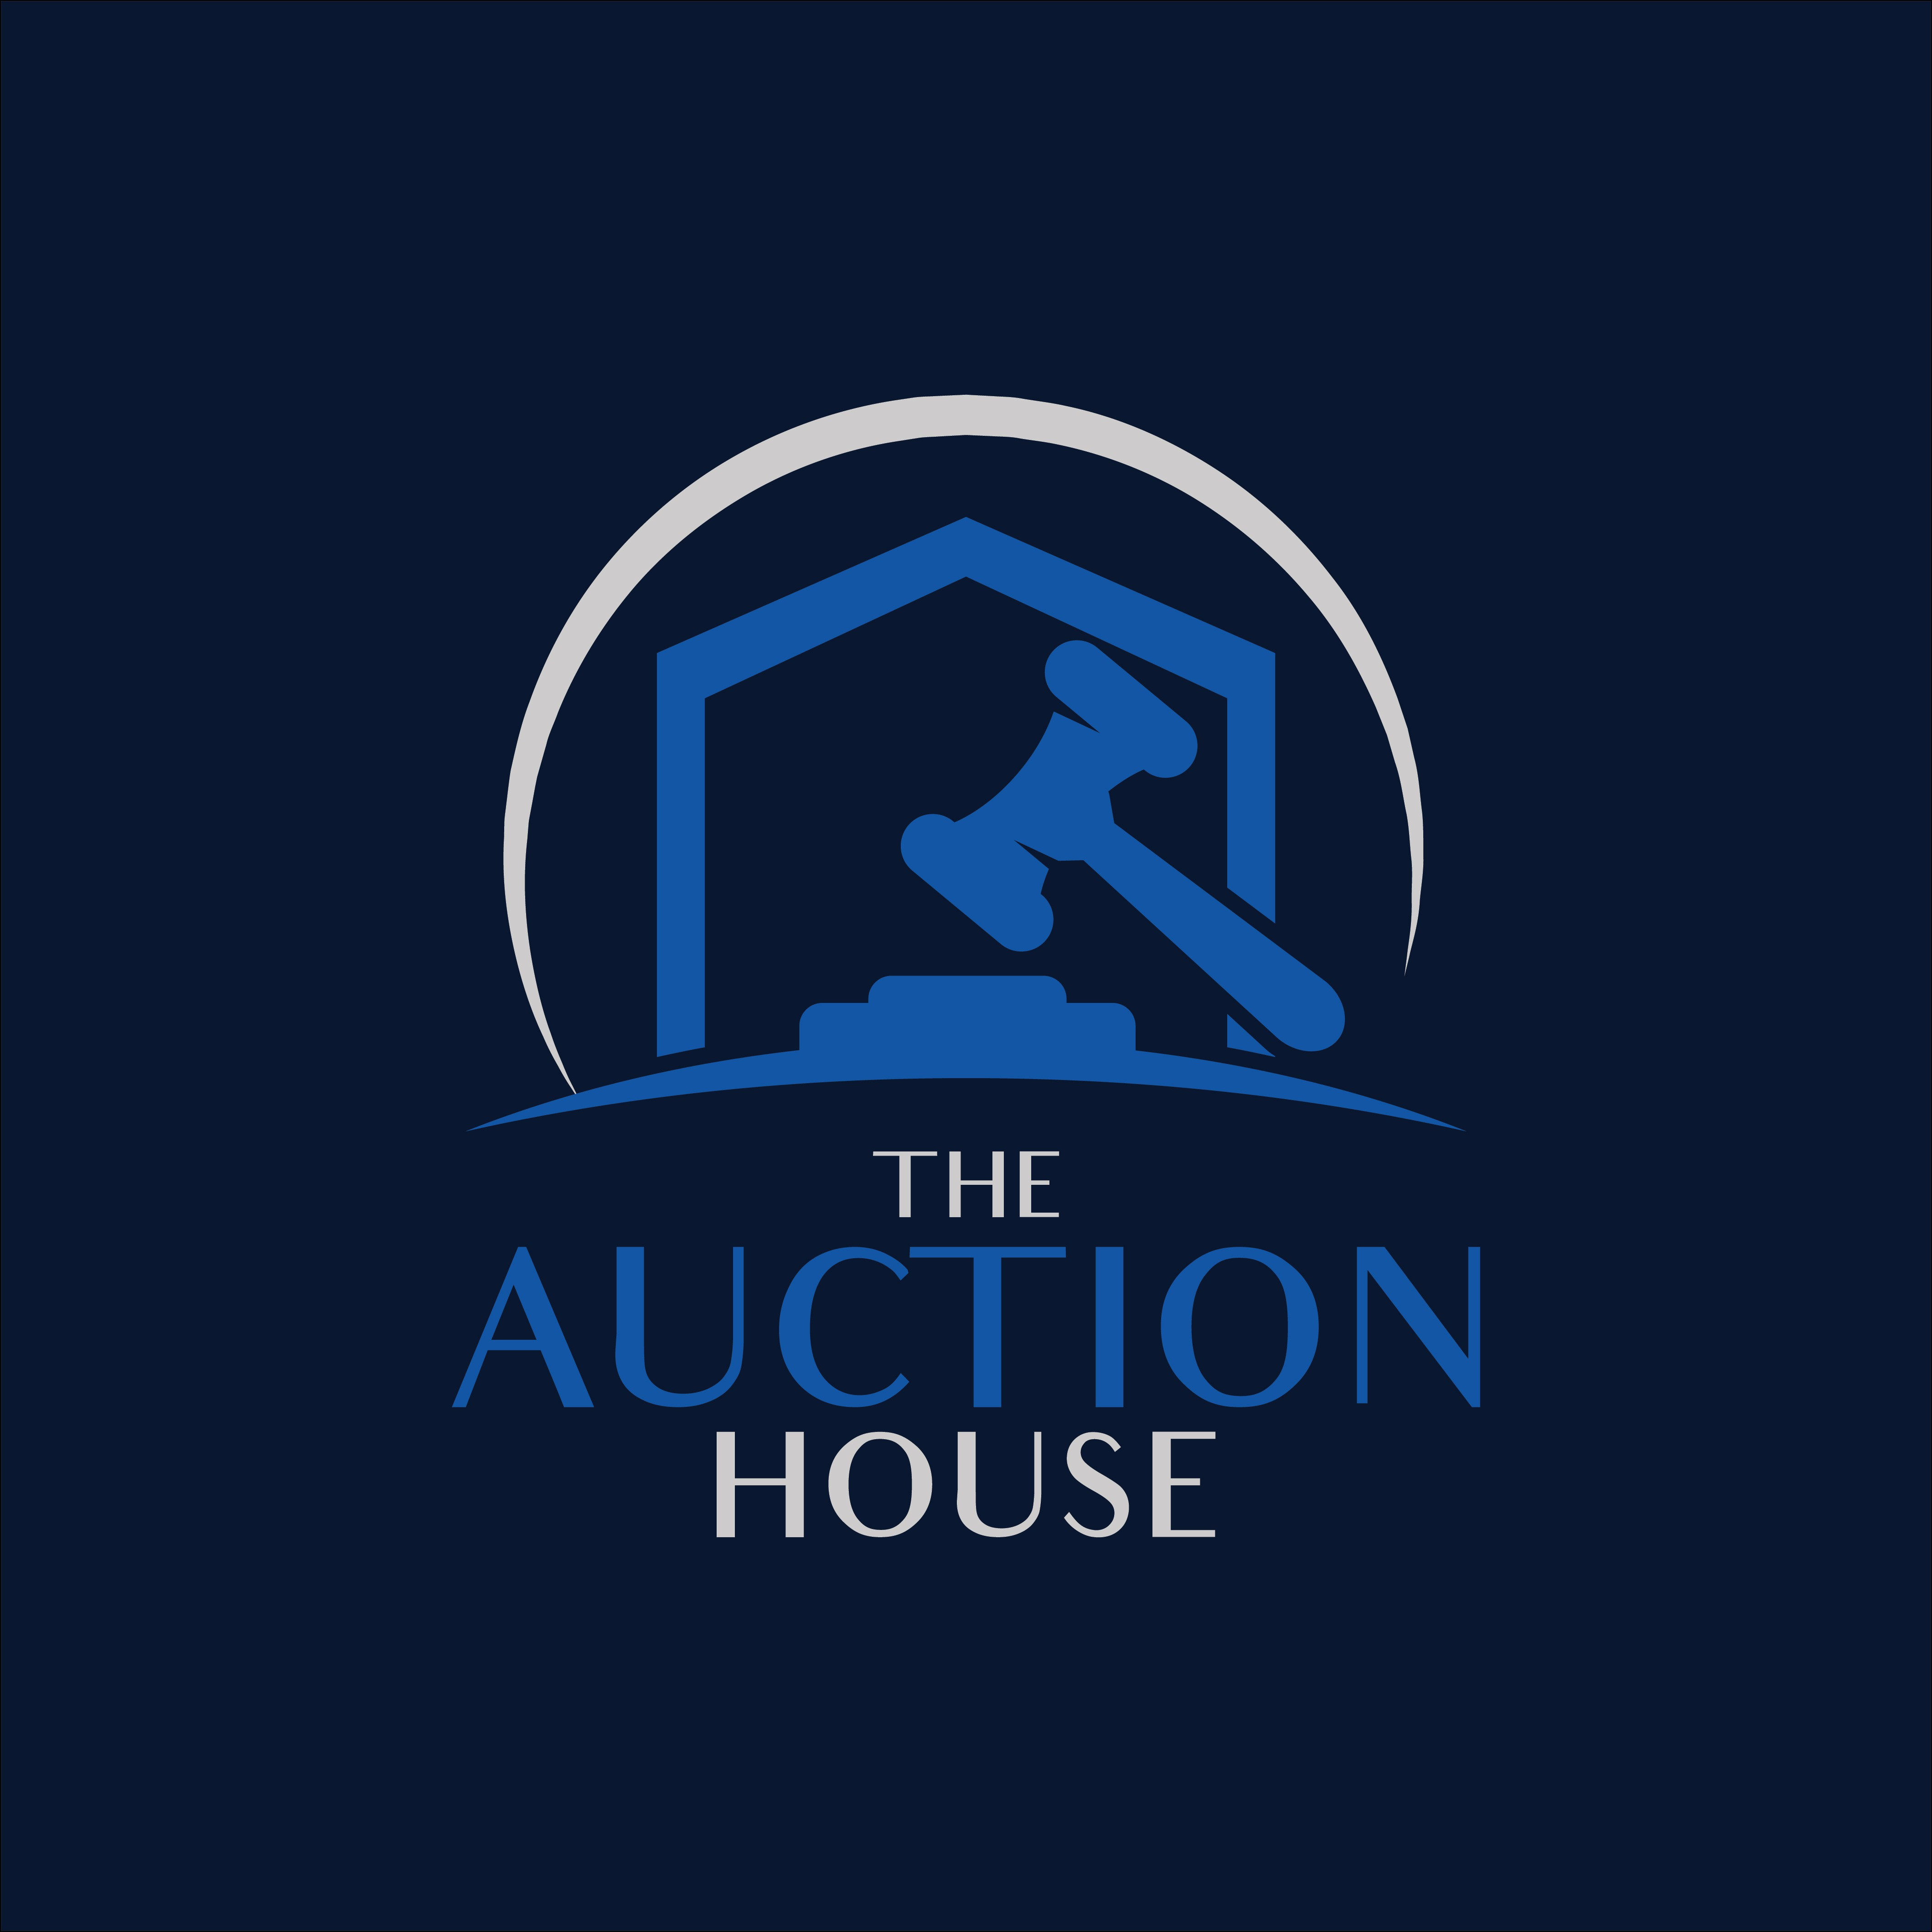 This could be the future of online racehorse sales with options to auction multiple items